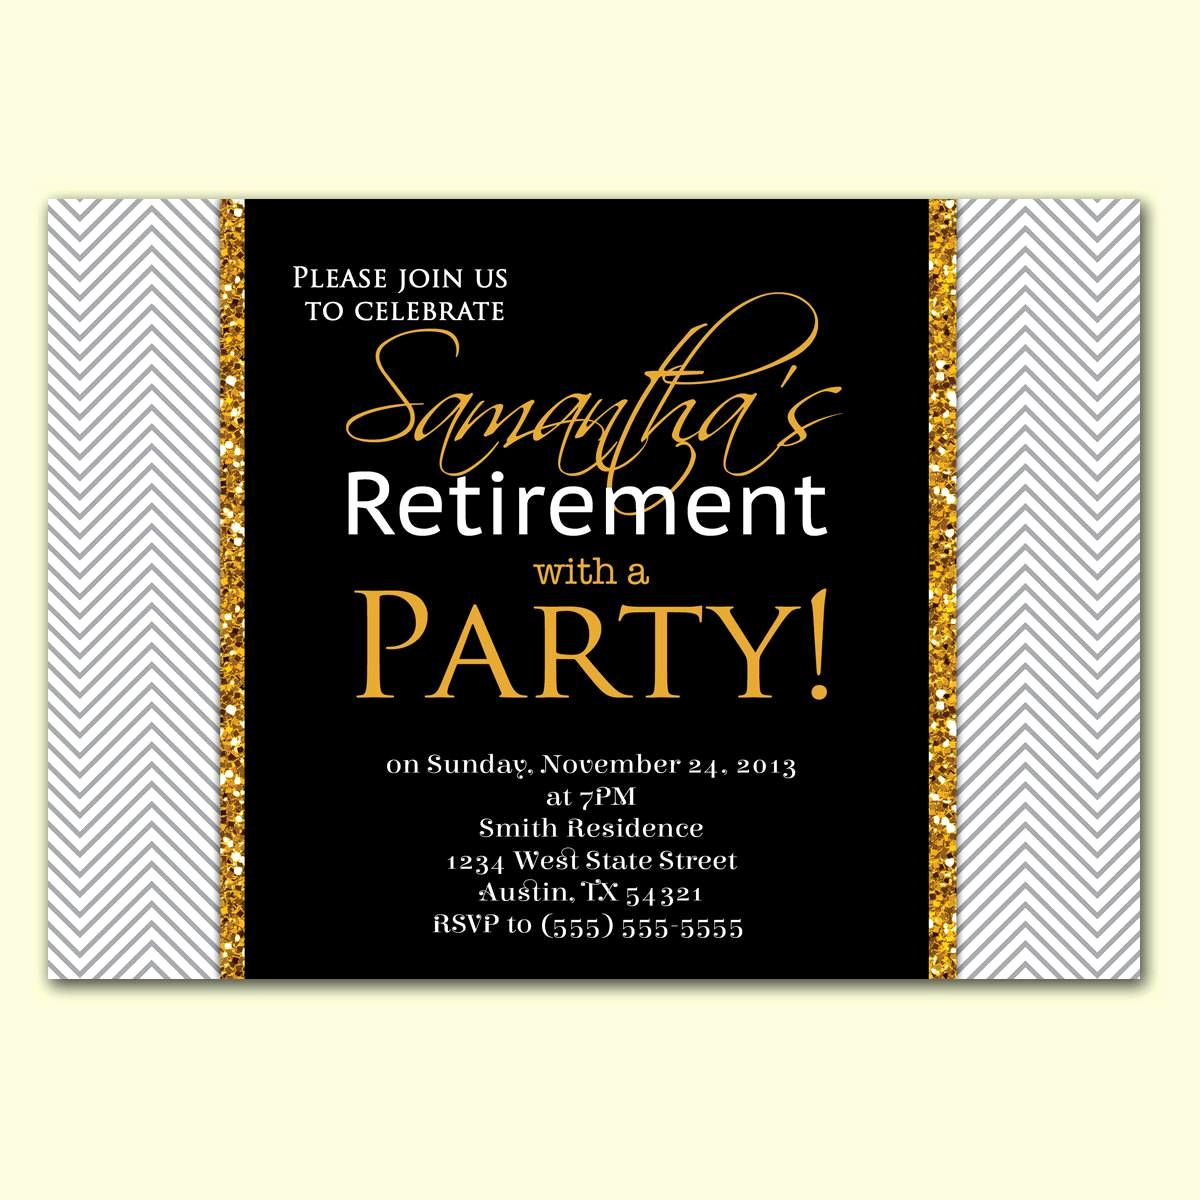 Retirement Party Invitations Template New Retirement Party Invitation Wording In Hindi